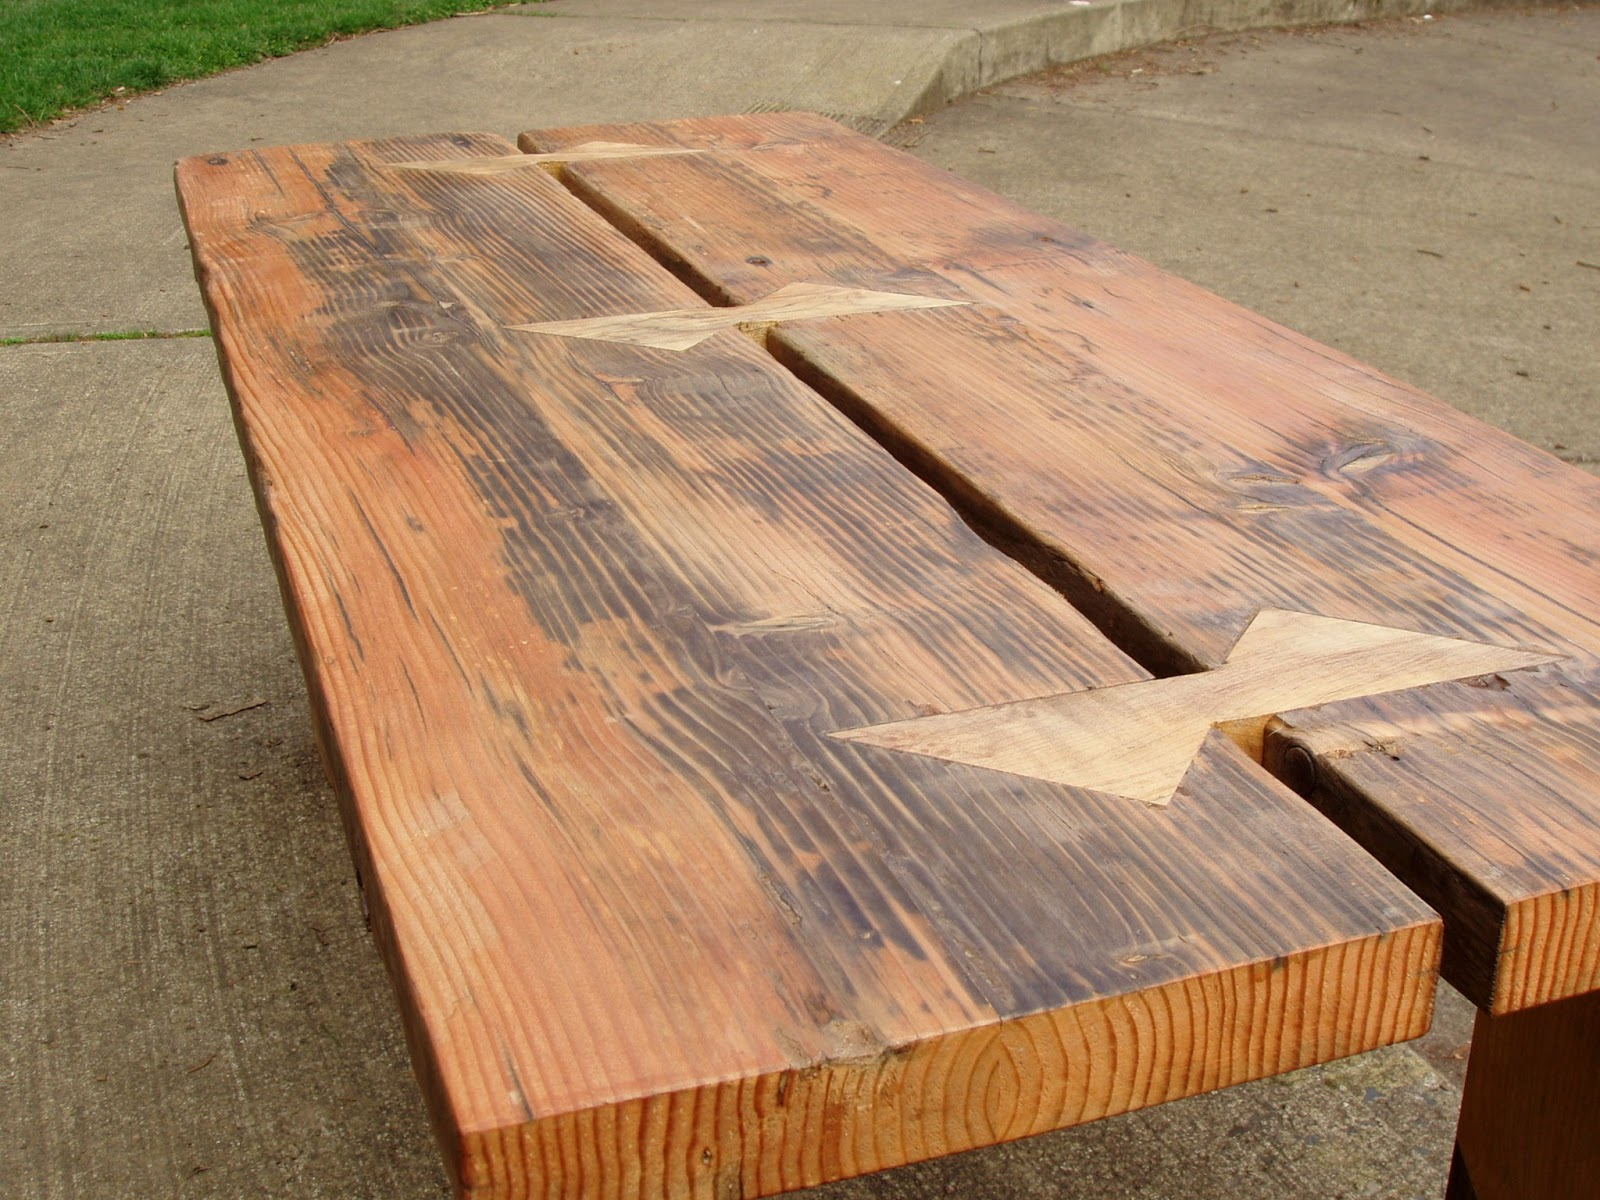 Reclaimed wood furniture portland oregon for Reclaimed wood oregon